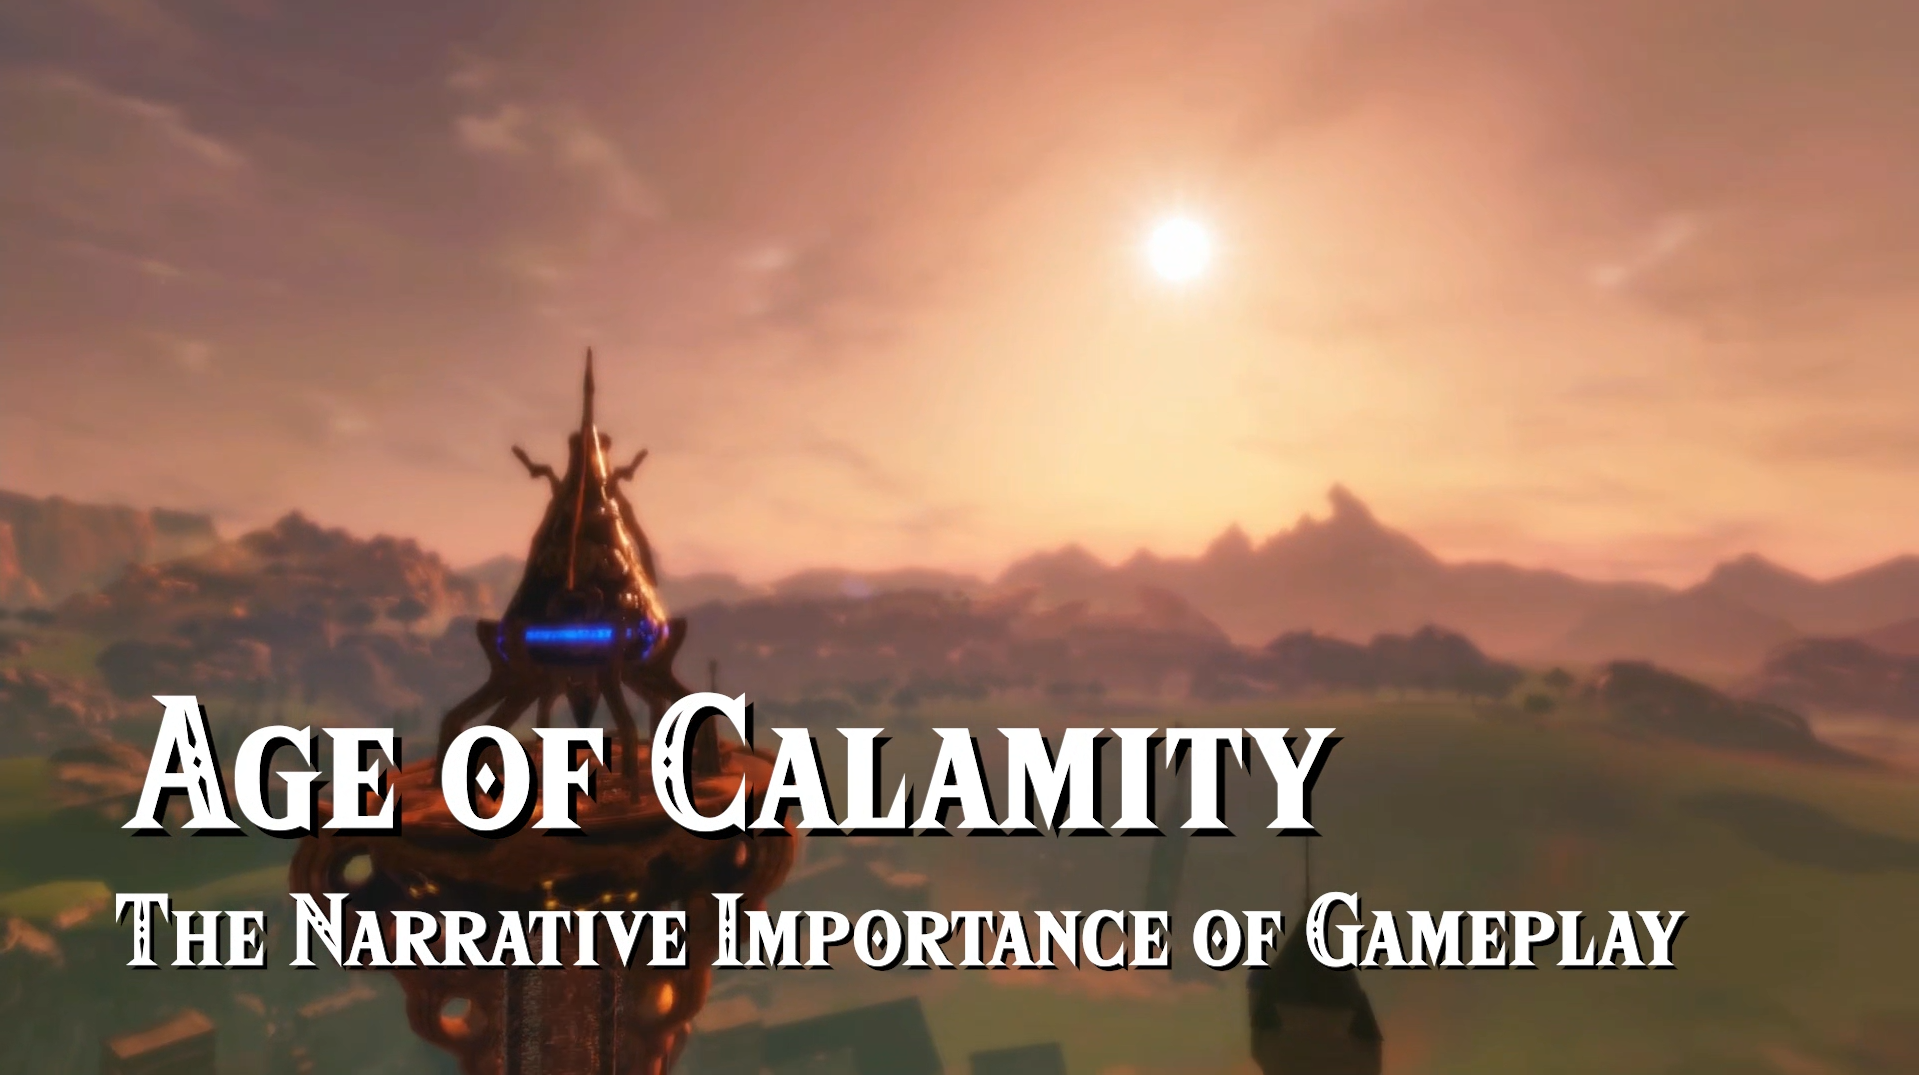 Age of Calamity: The Narrative Importance of Gameplay